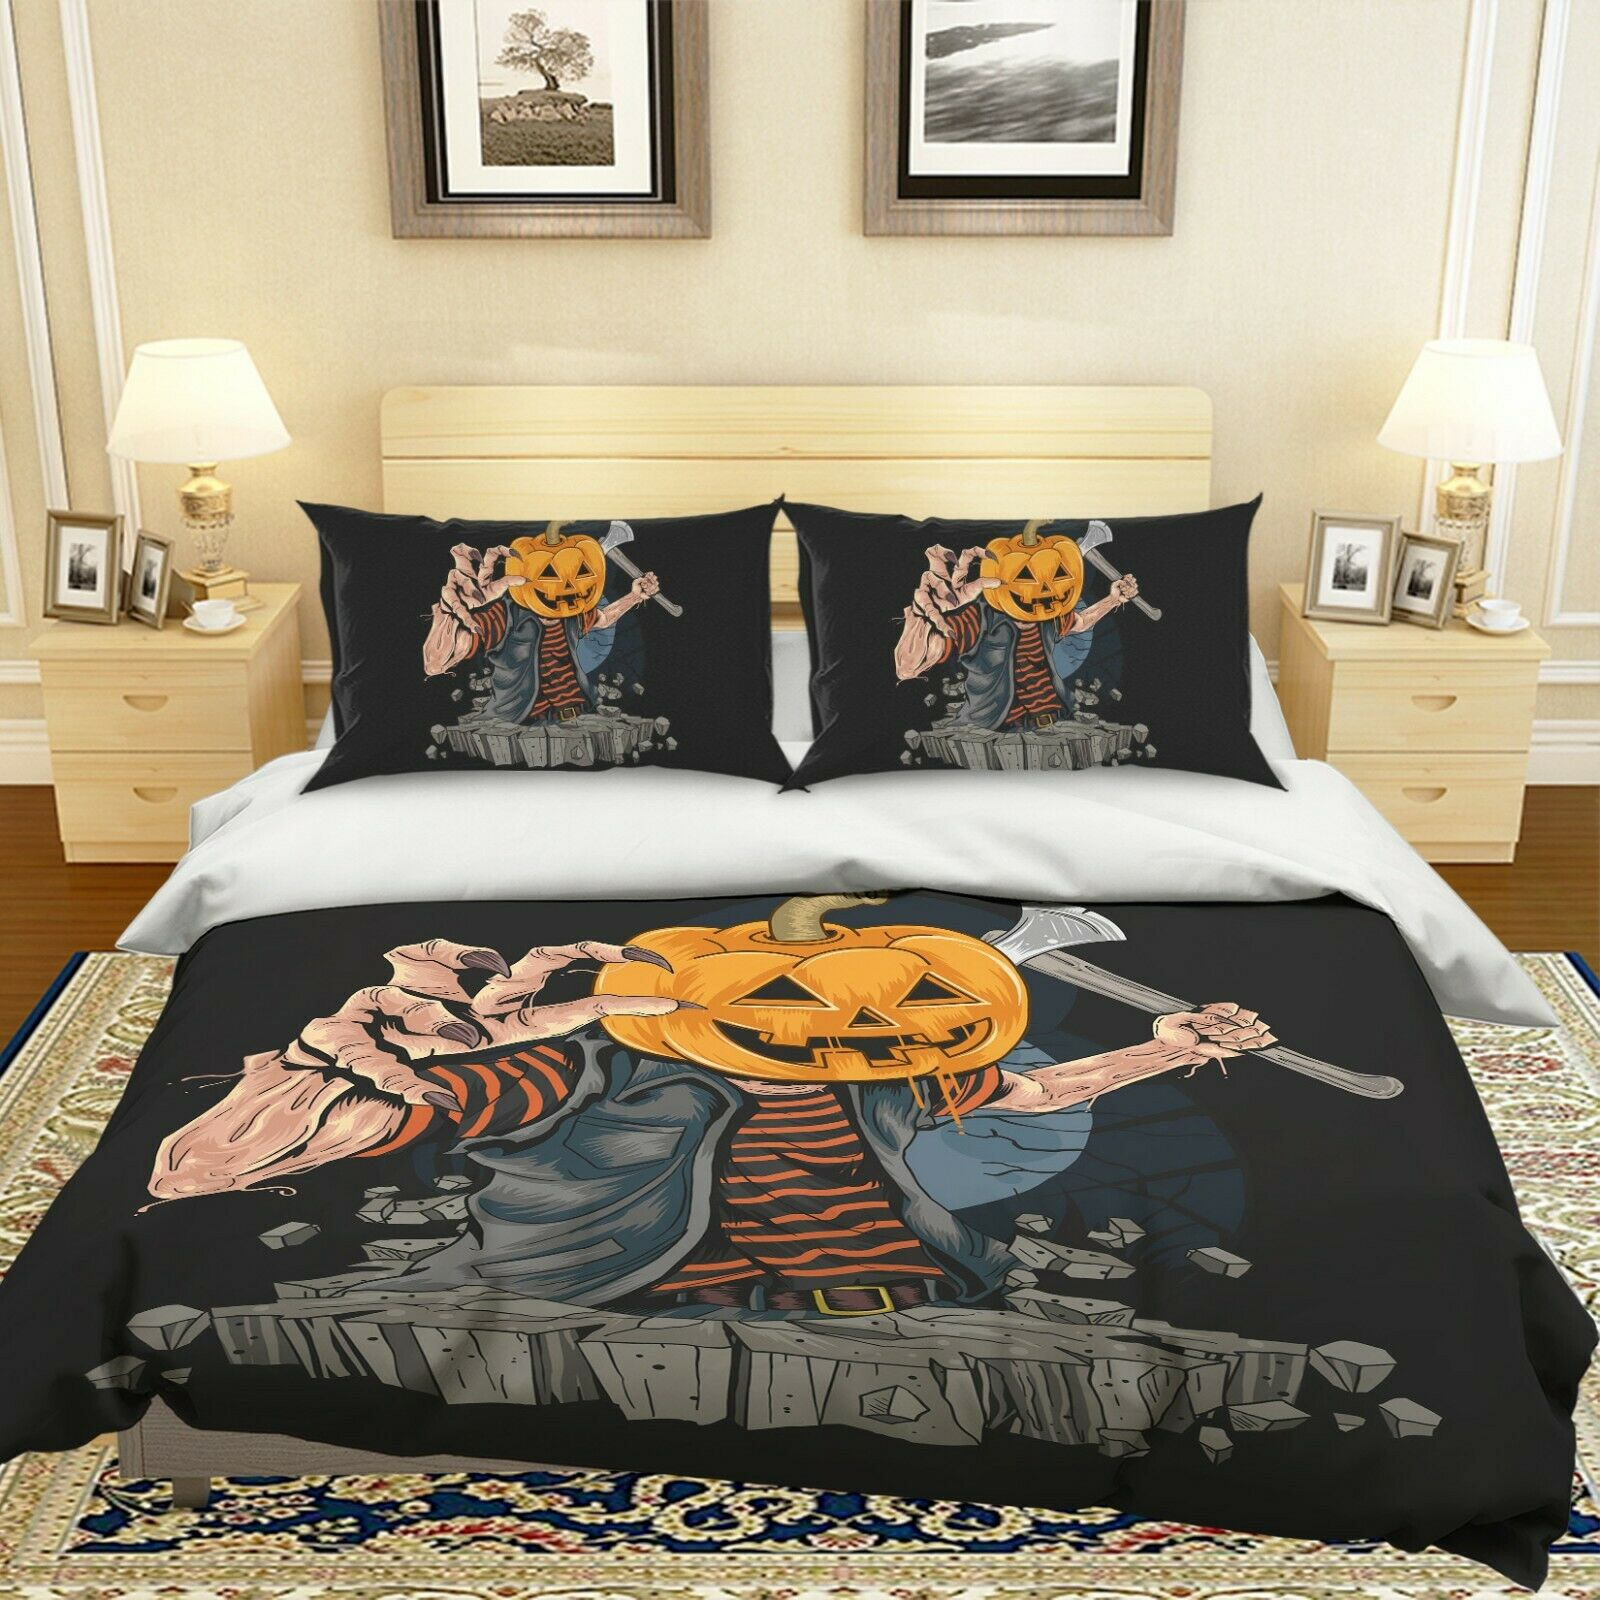 3D Pumpkin Axe Man I134 Halloween Bett Pillowcases Duvet Startseite Quilt Amy